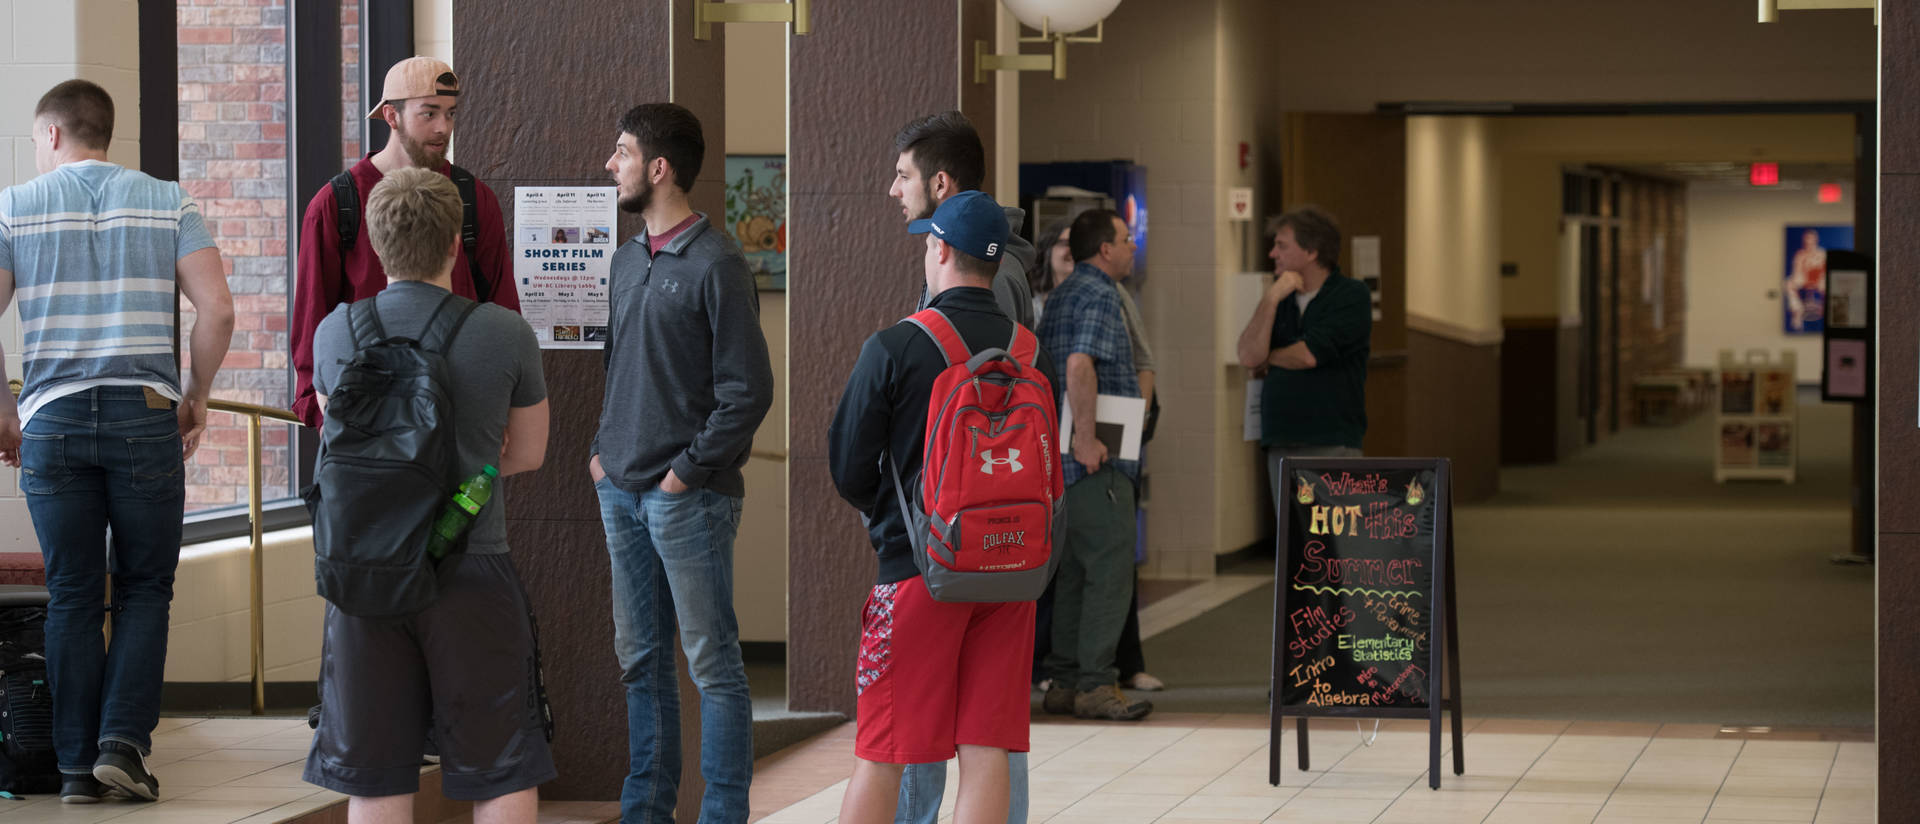 Students gathered in hallway of Ritzinger Hall in UW-Barron County